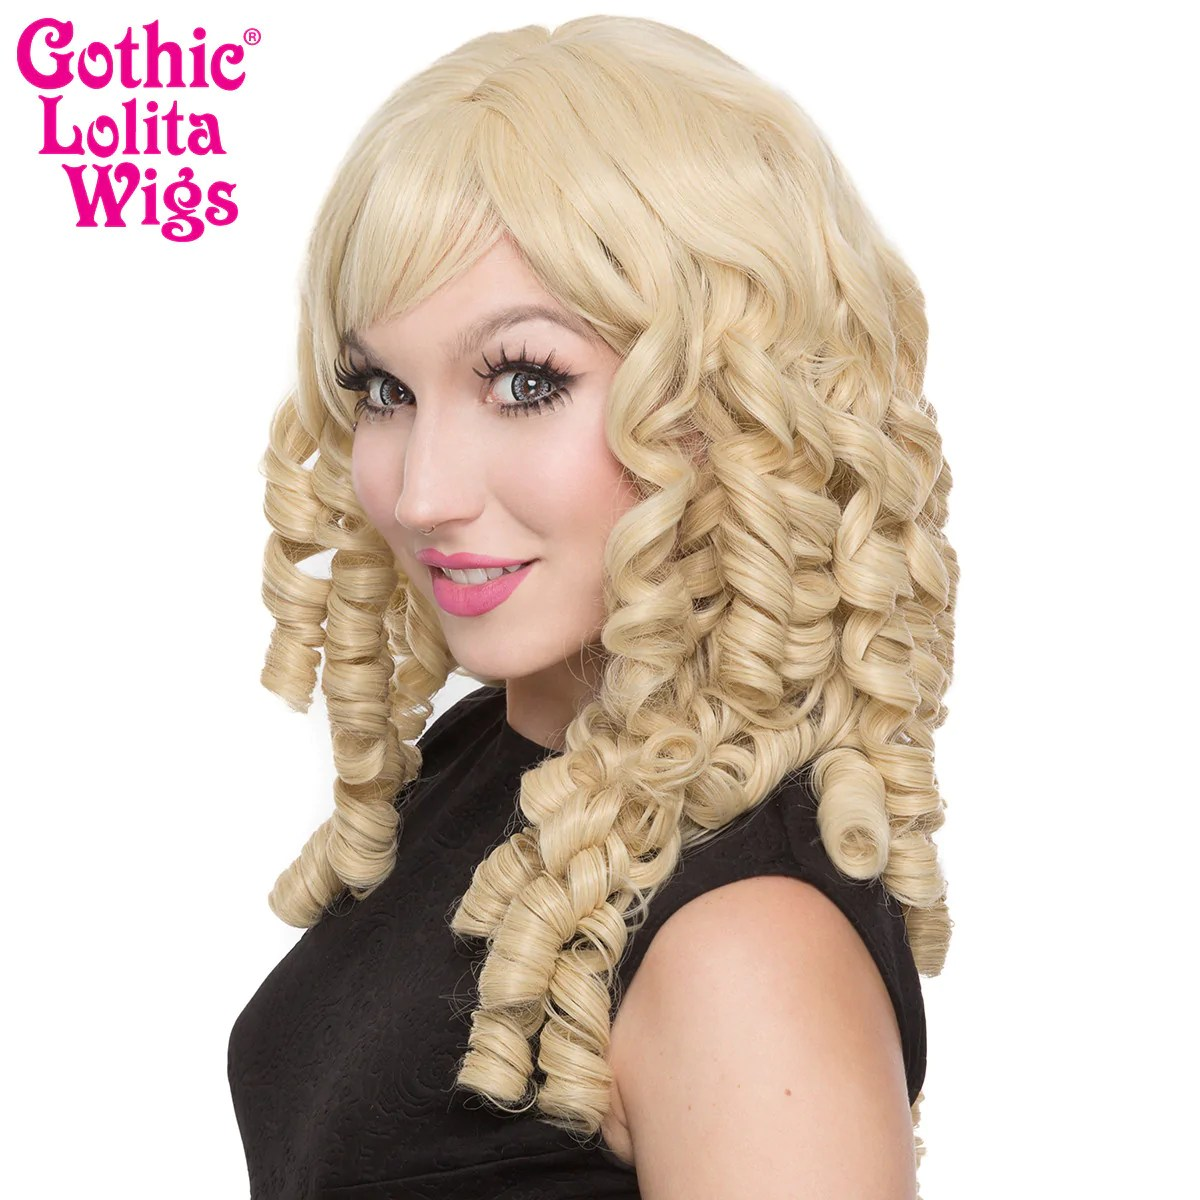 Gothic Lolita Wigs Ringlet Redux Collection Blonde